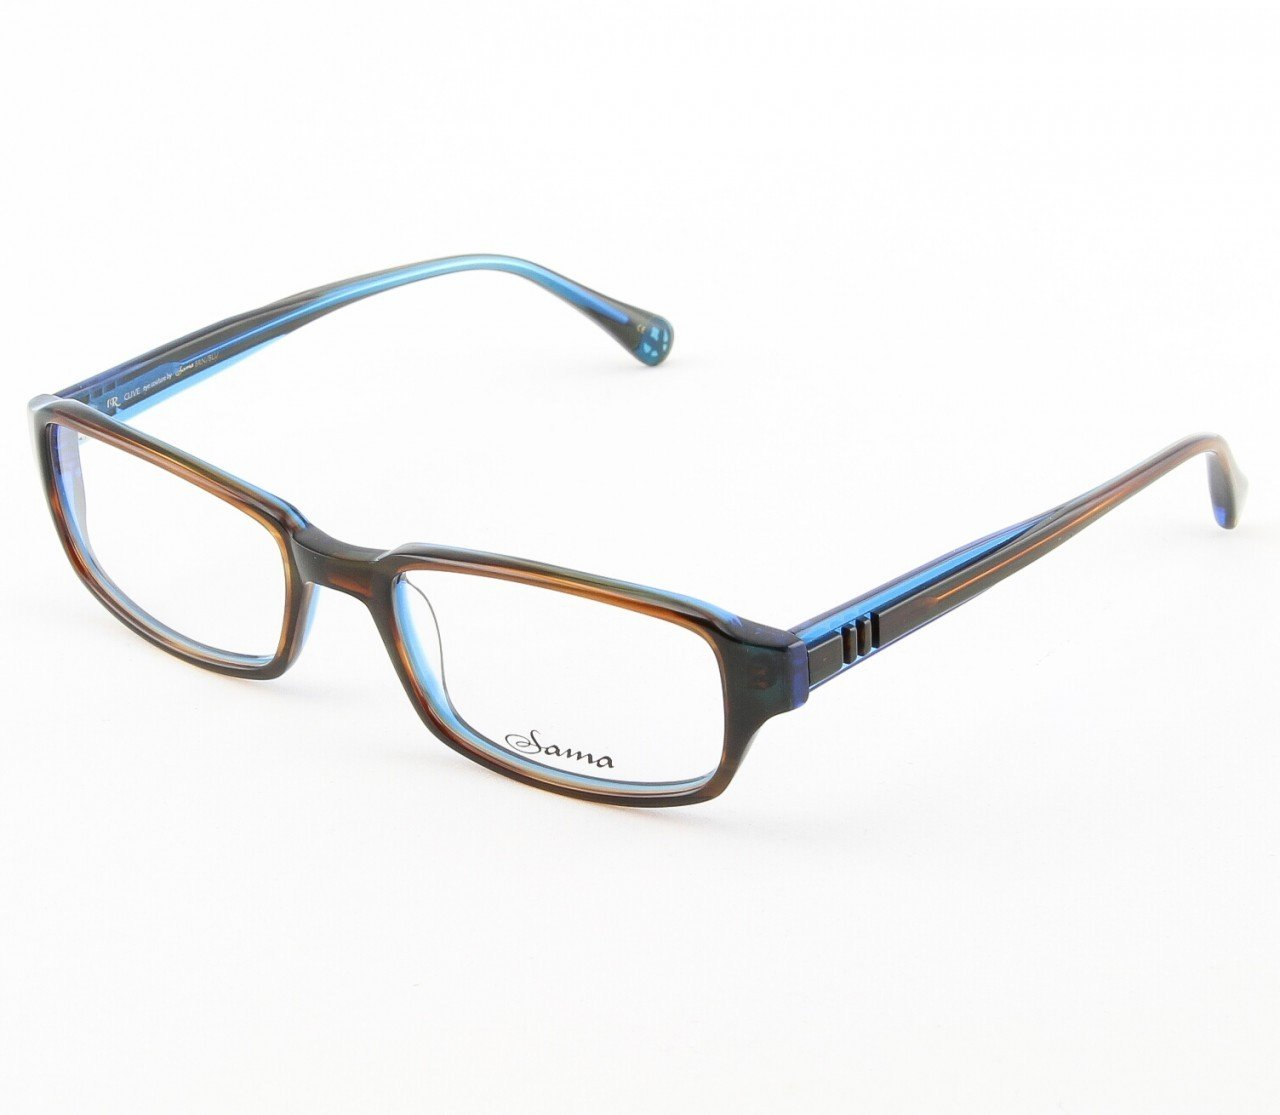 Loree Rodkin Clive Eyeglasses by Sama Col. Brown/Blue with Clear Lenses